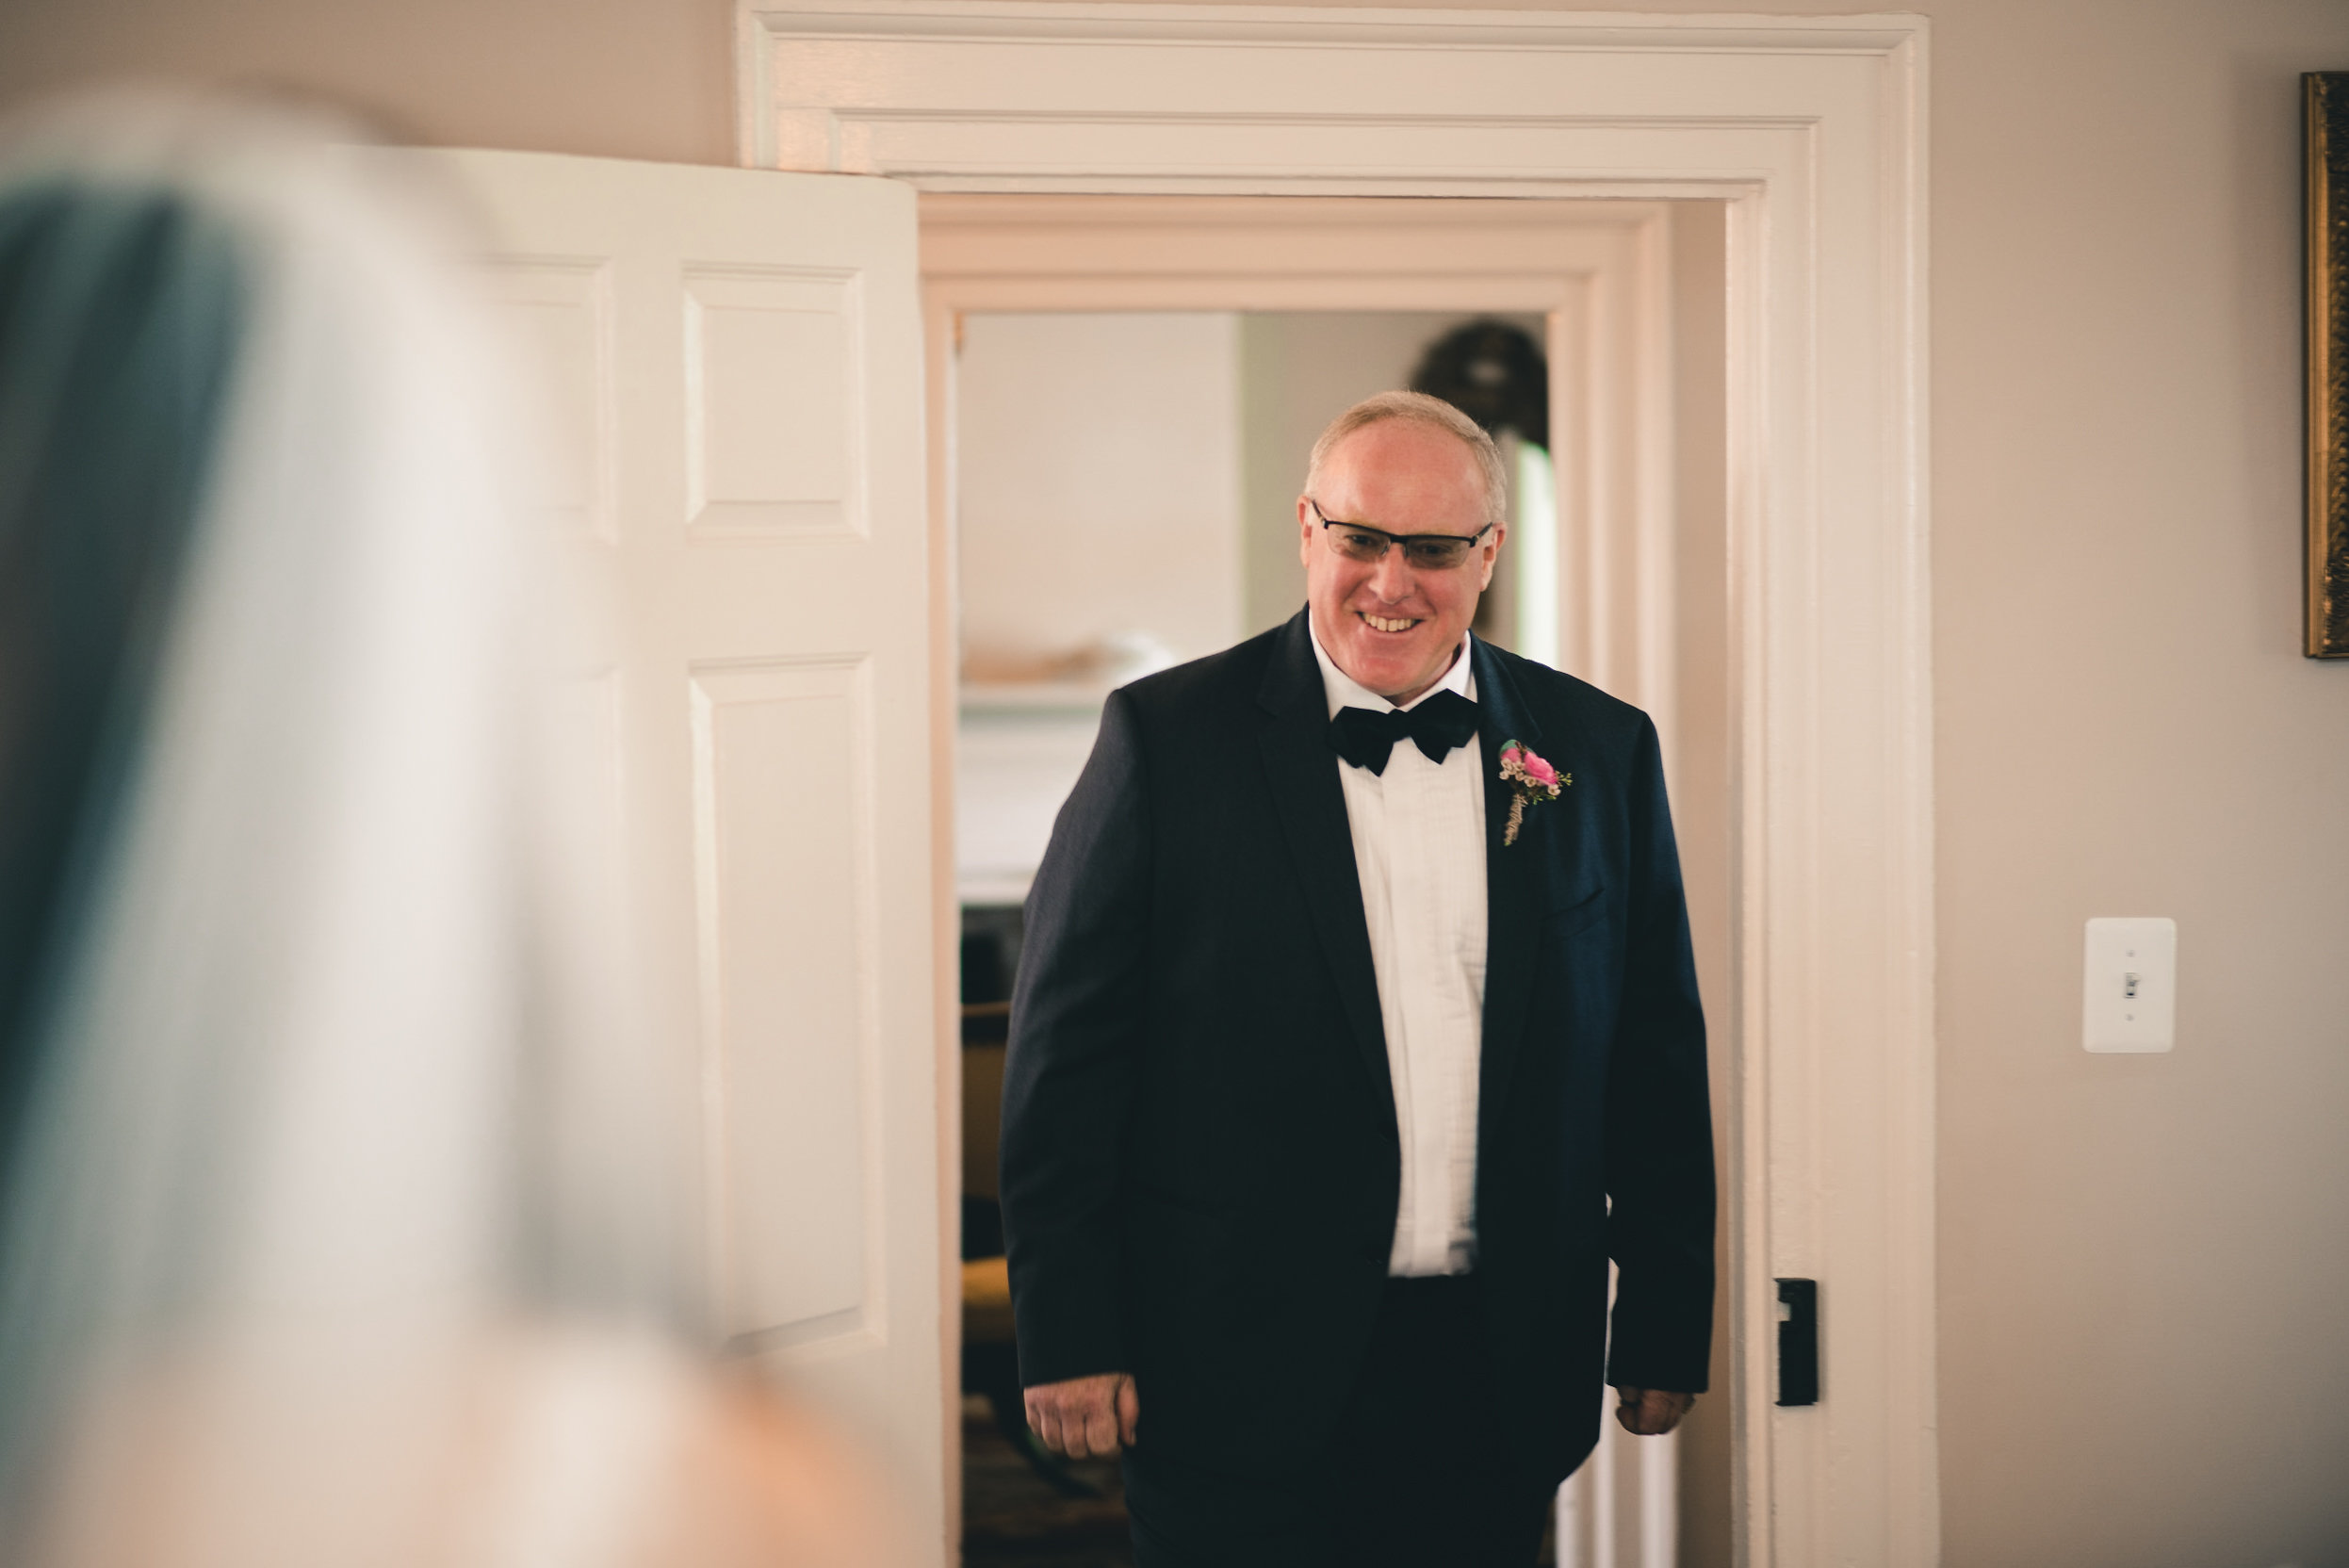 Father seeing bride for first time